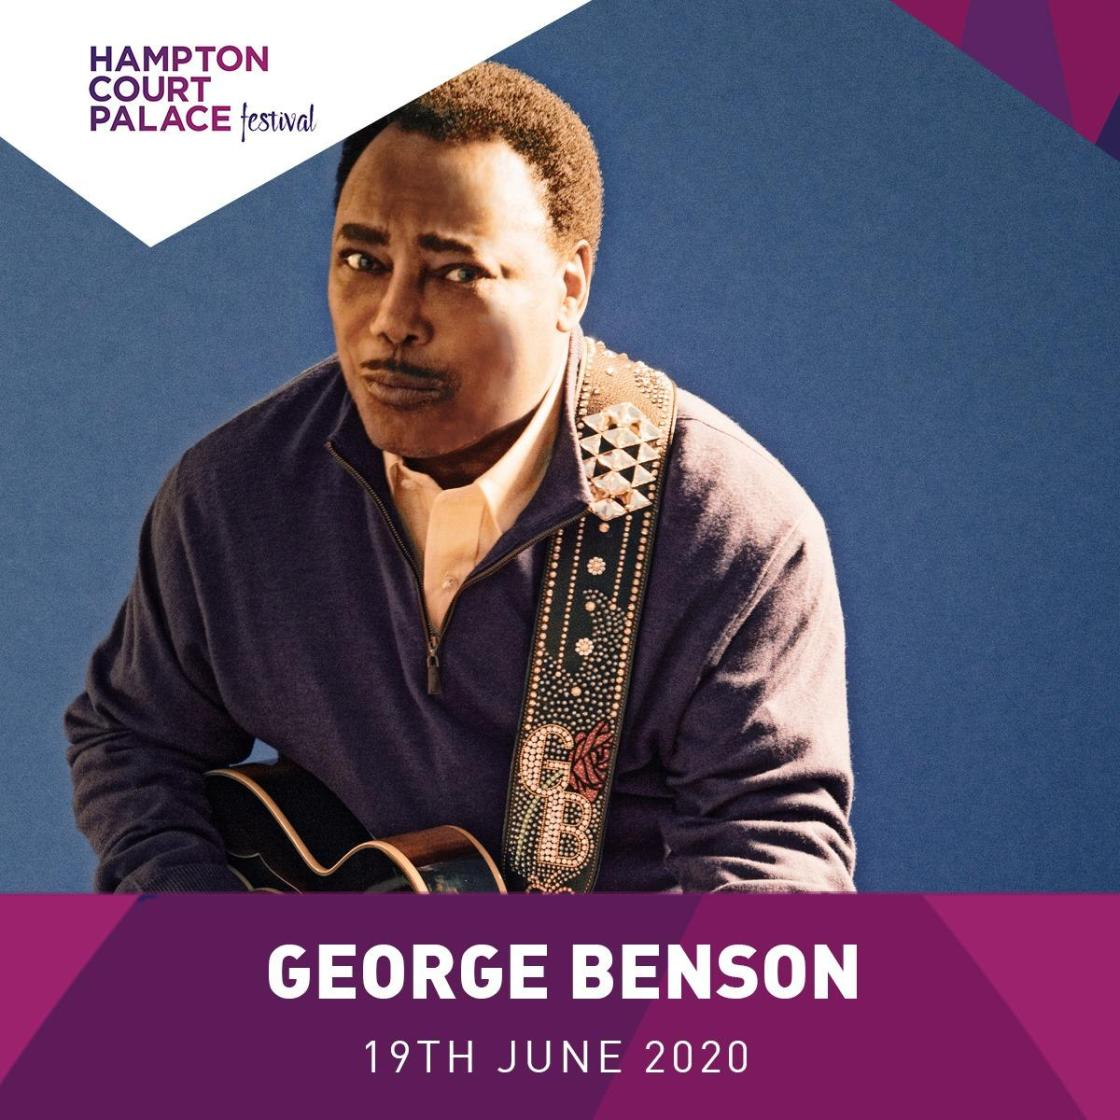 Limited pre-sale tickets now available for George Benson! Get in quick to get yo...